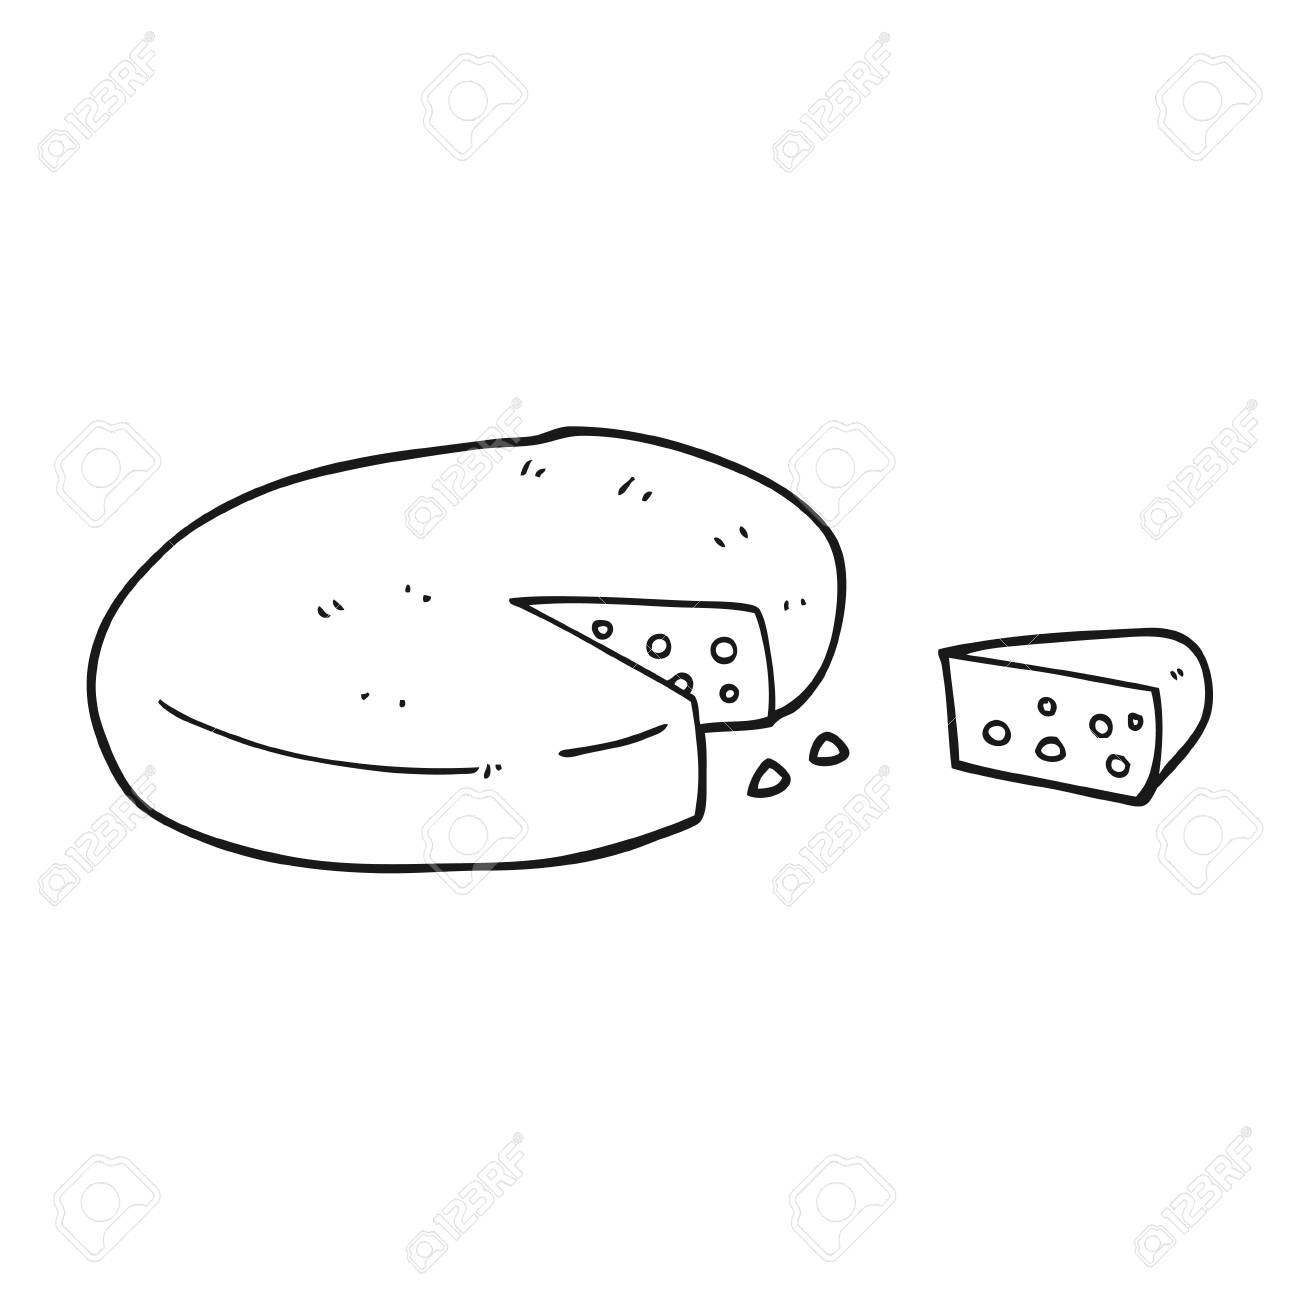 Black And White Illustration Black And White Cheese Clipart Download Illustration 2020